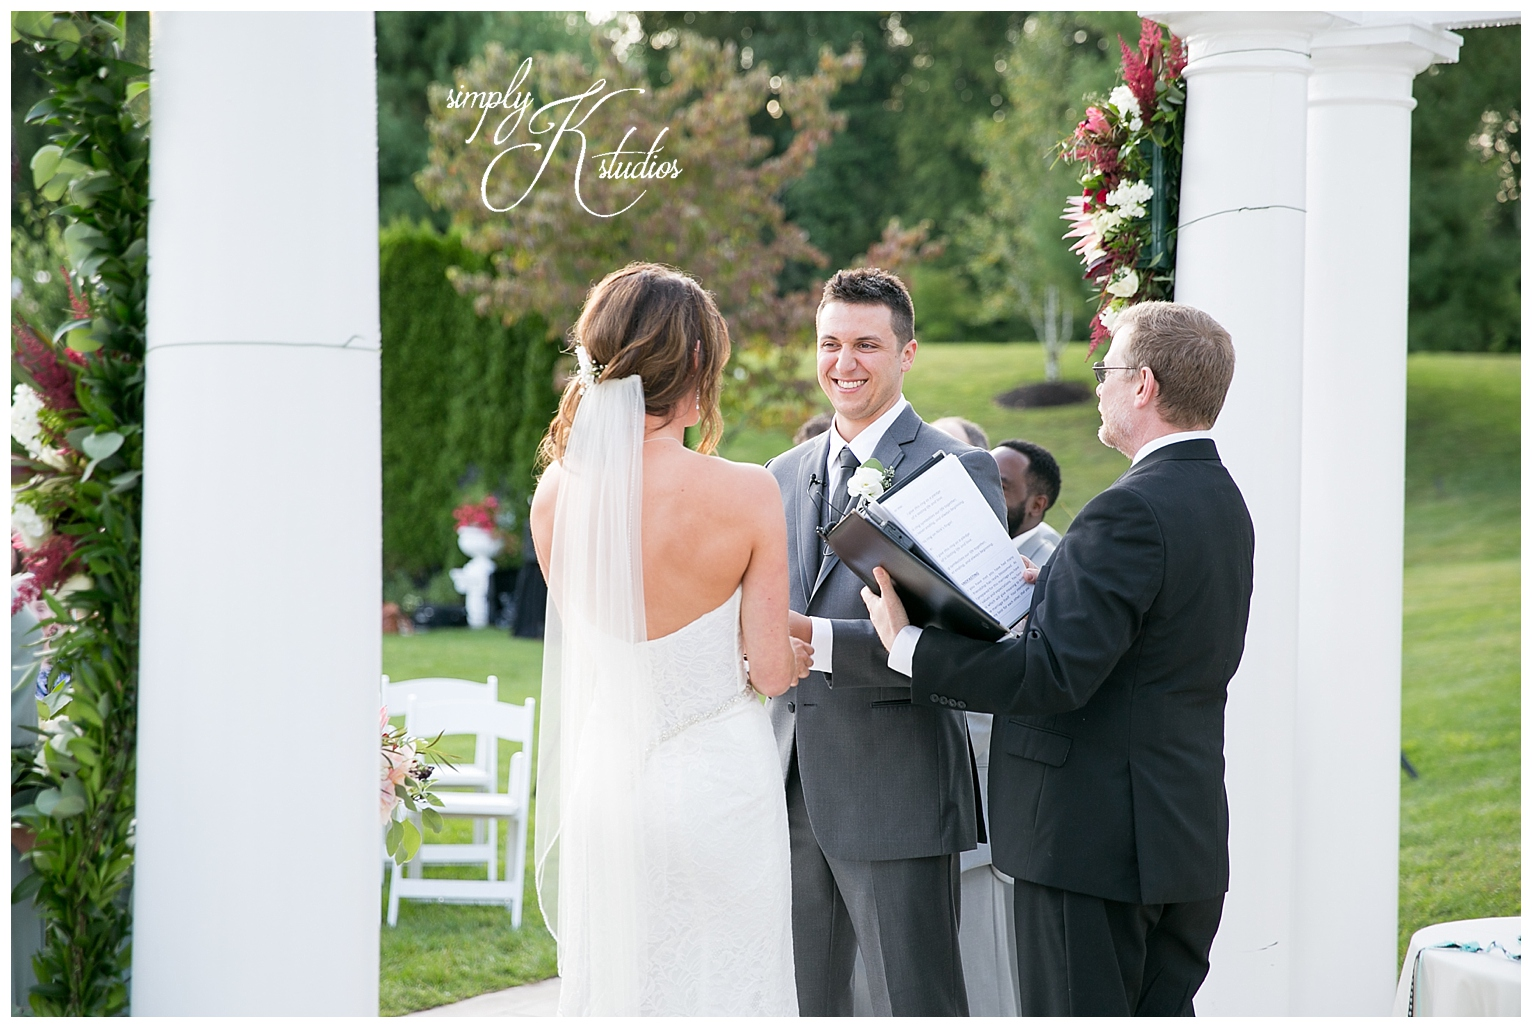 Connecticut Wedding Officiants.jpg